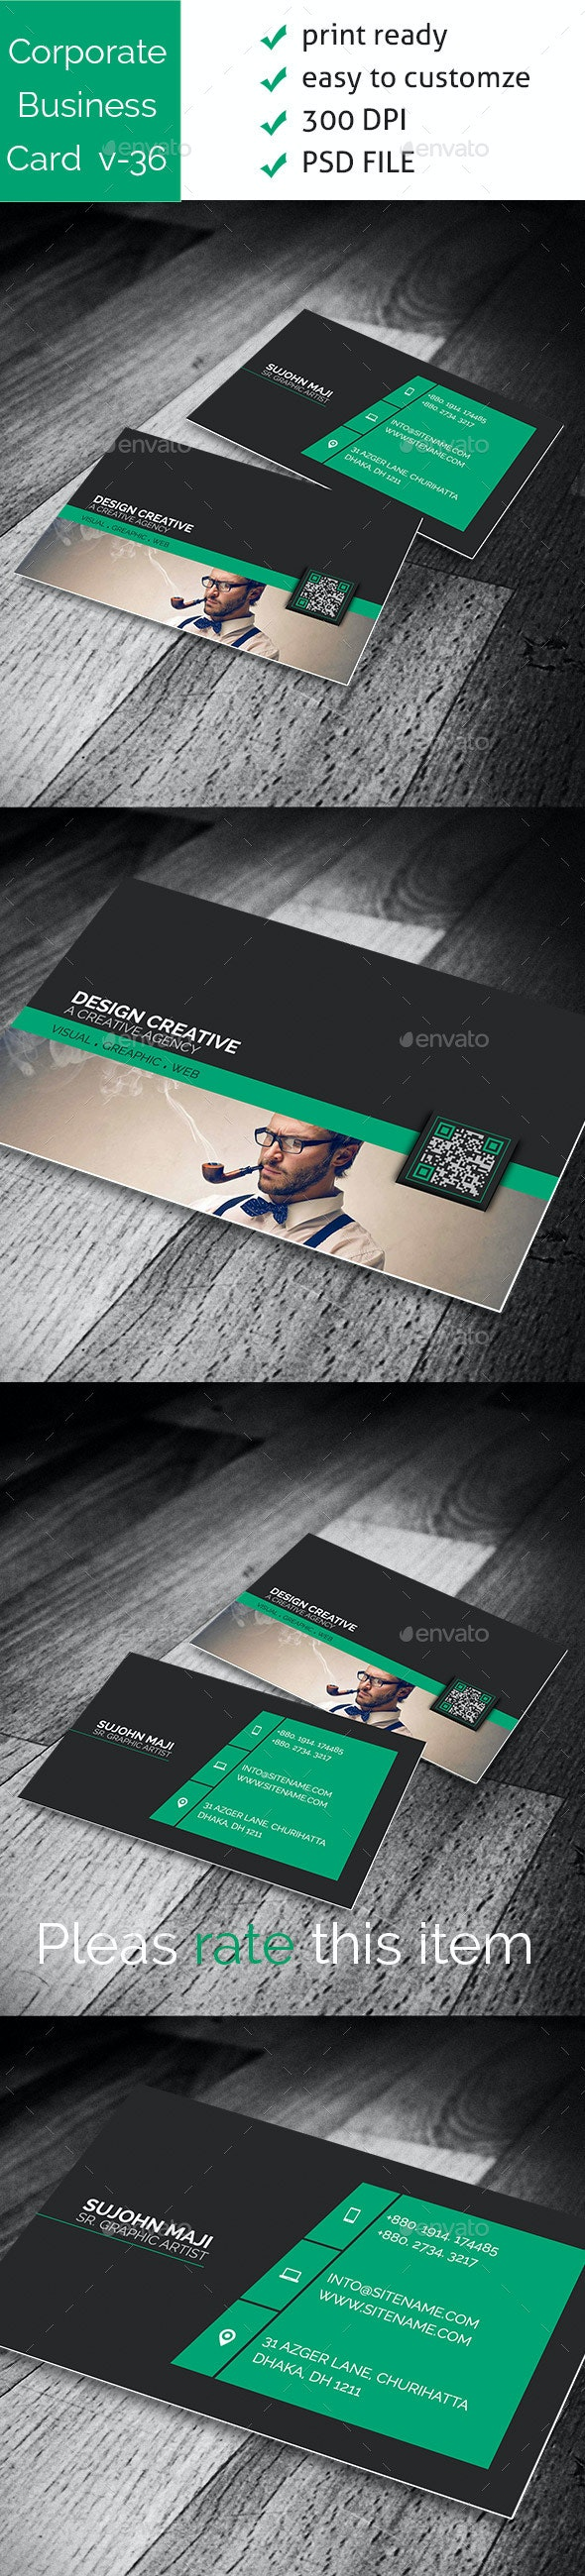 Corporate Business Card VO-36 - Corporate Business Cards